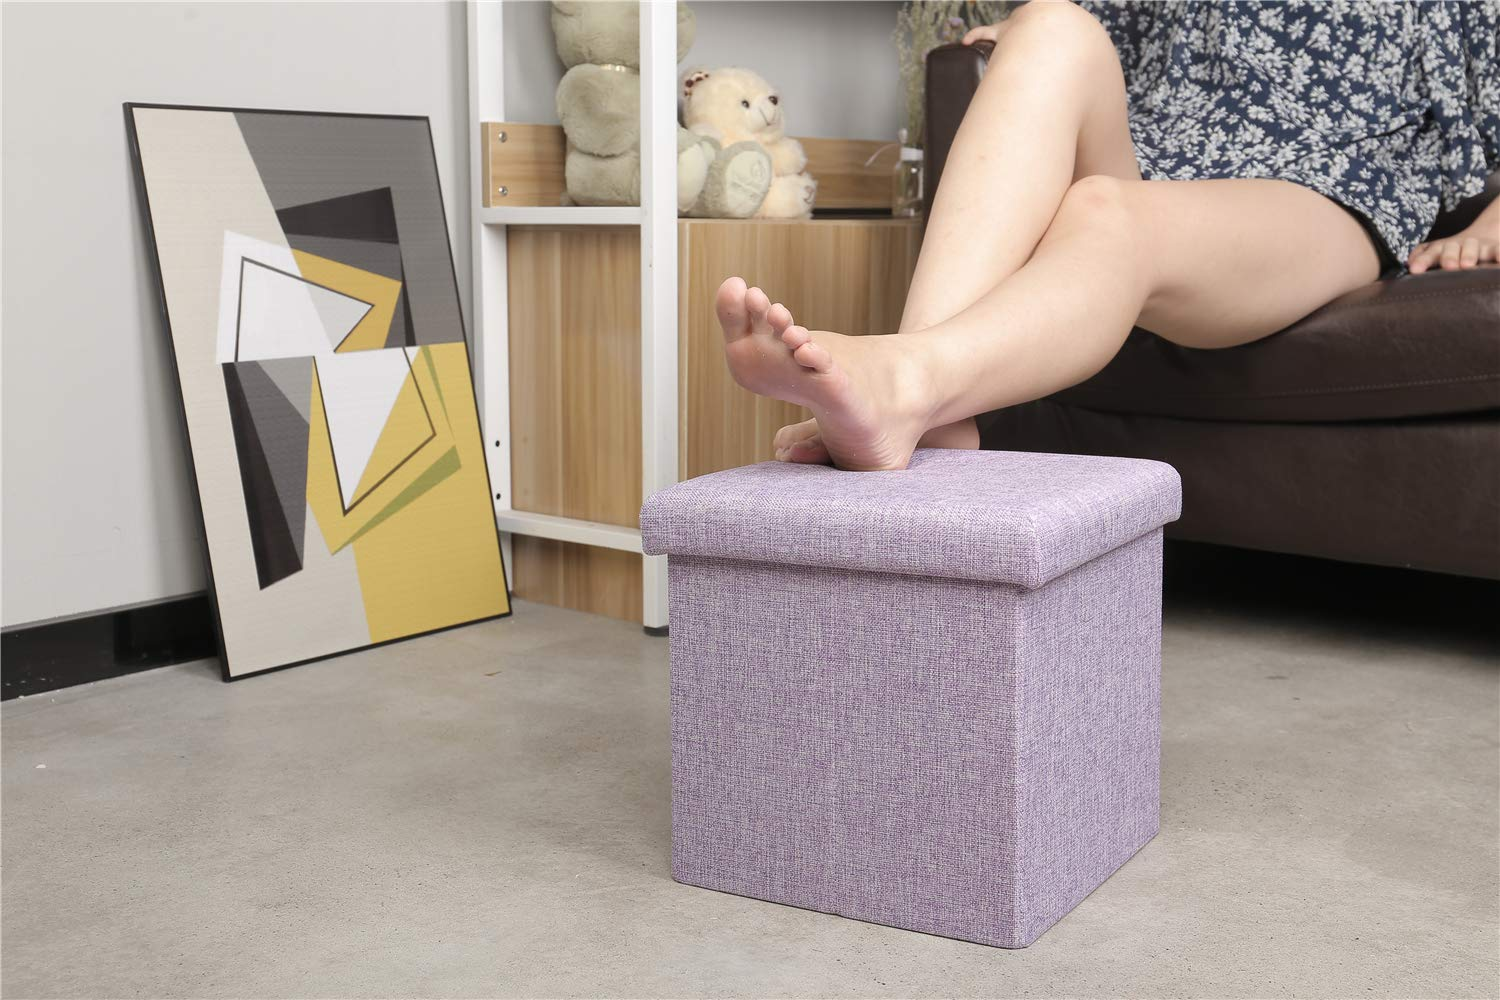 B FSOBEIIALEO Storage Ottoman Cube, Linen Small Coffee Table, Foot Rest Stool Seat, Folding Toys Chest Collapsible for Kids Purple 11.8''x11.8''x11.8''